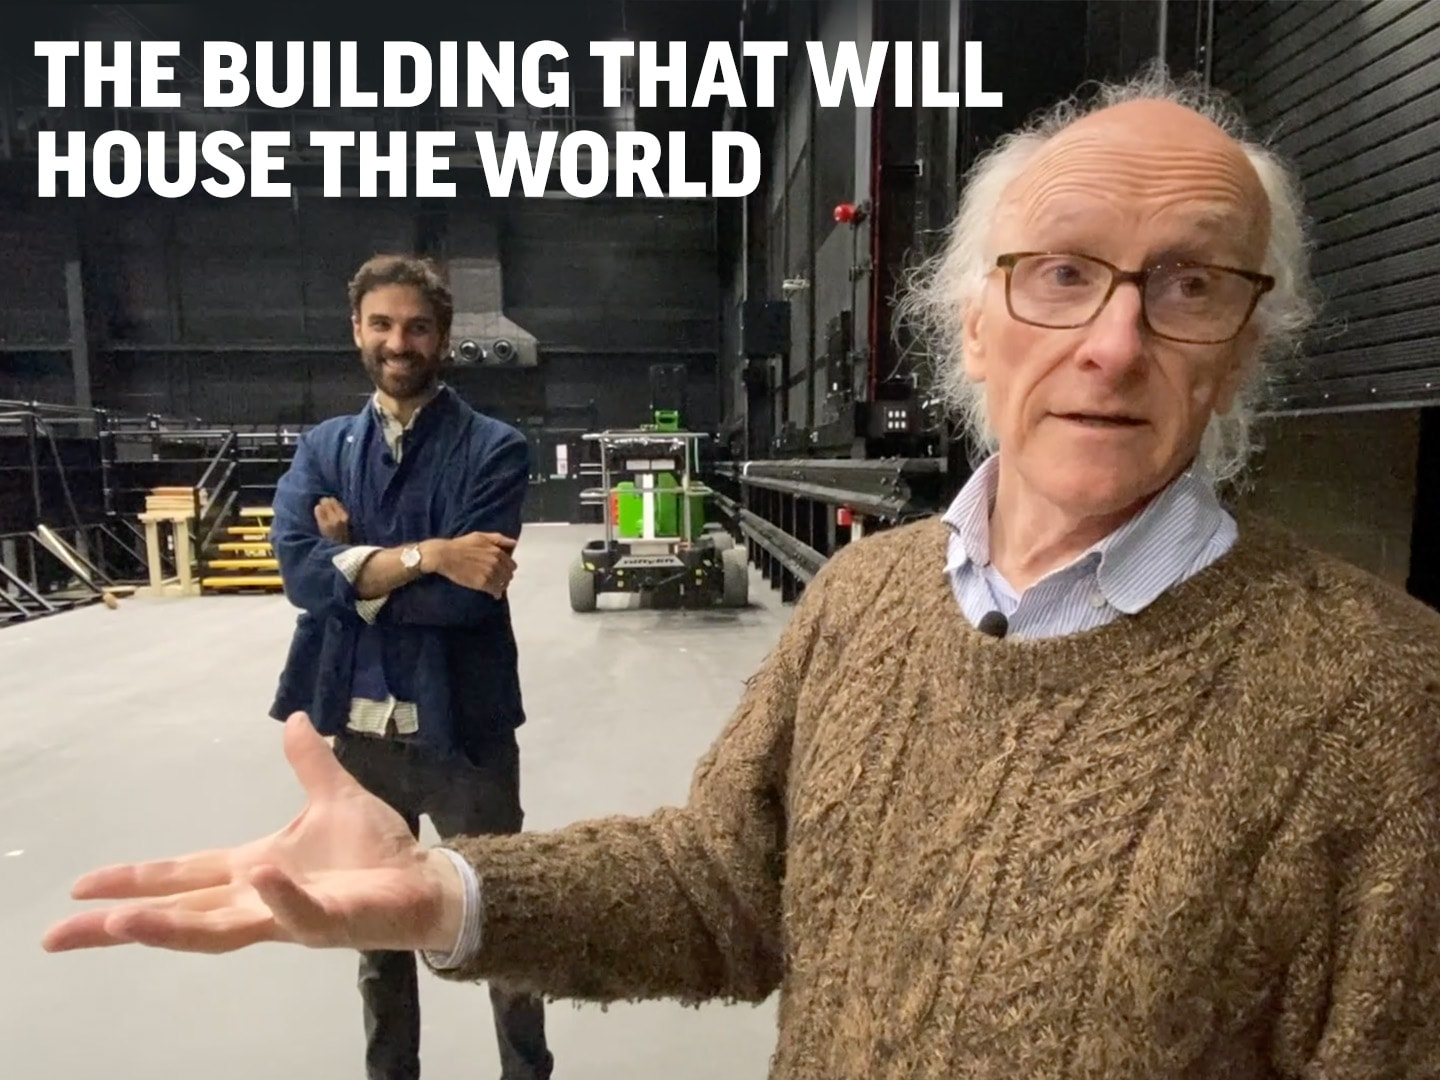 The building that will house the world